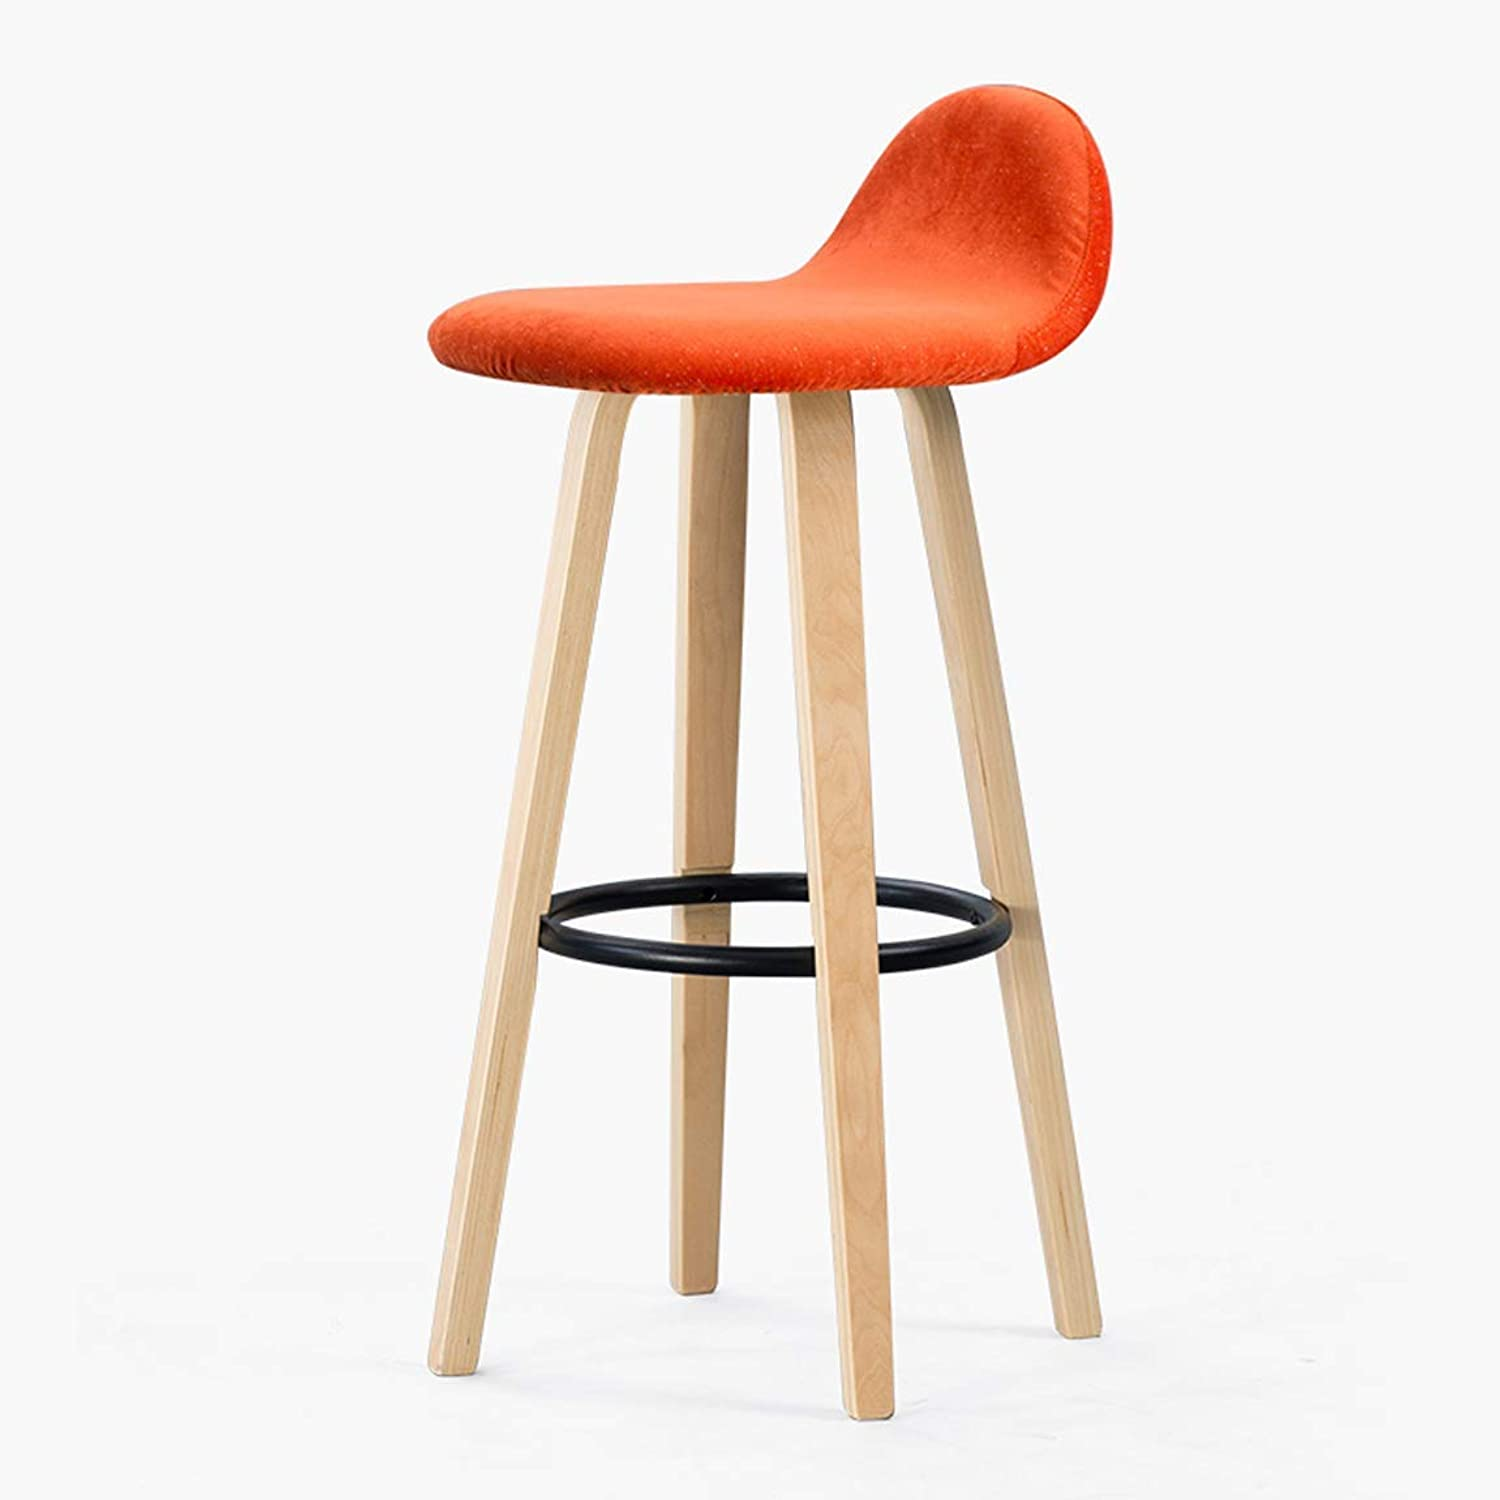 Carl Artbay Bar Chair Household Bar Stool Modern Bar Chair Solid Wood Nordic High Stool Primary color Legs 6 Strong and Practical